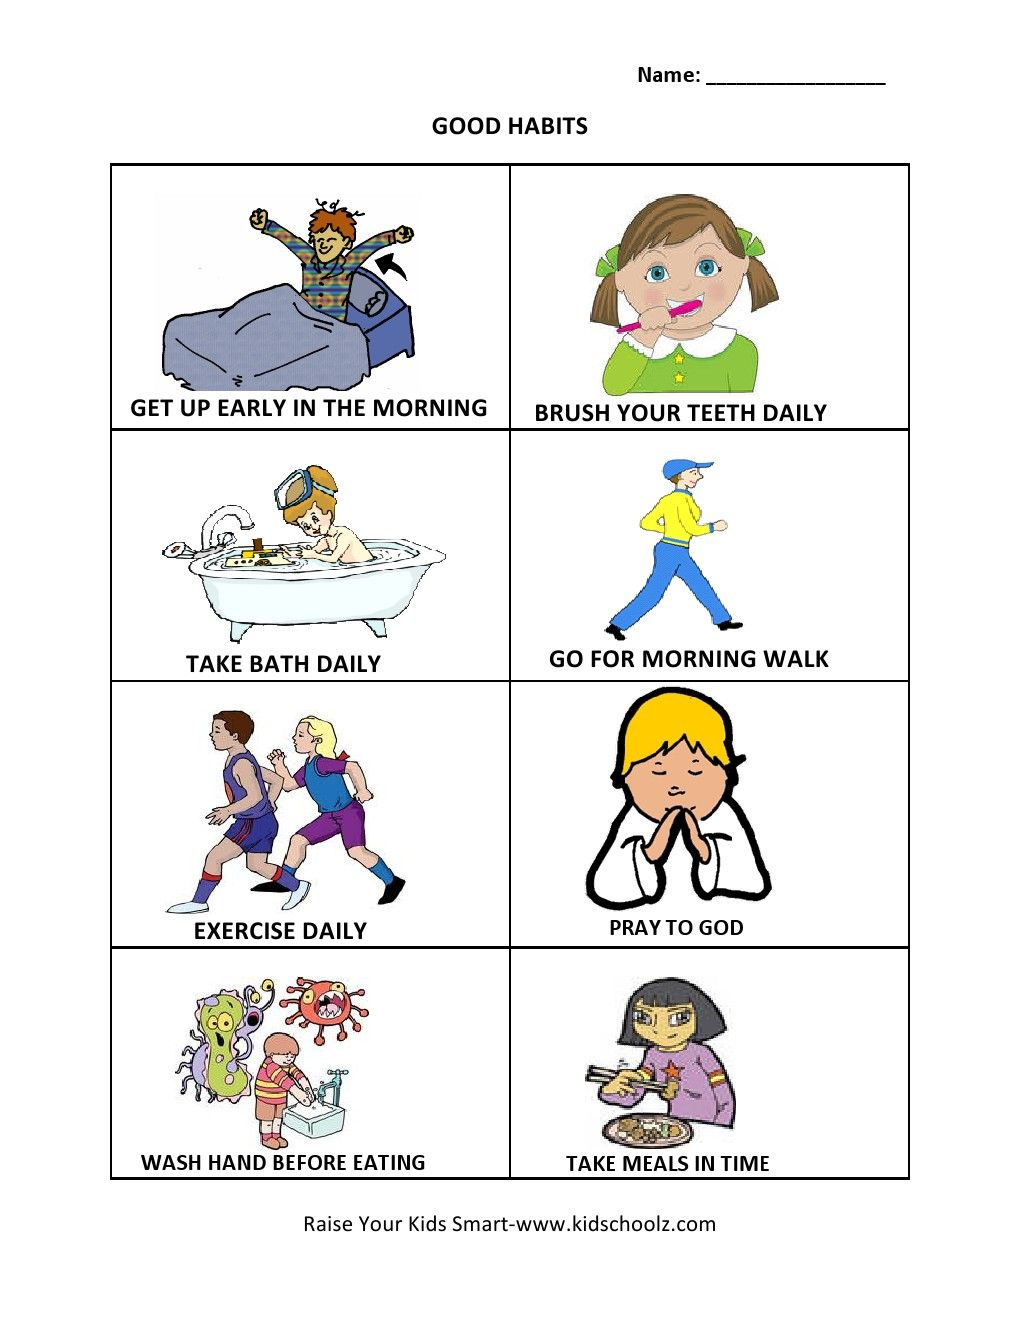 Clothes elementary text for reading and listening